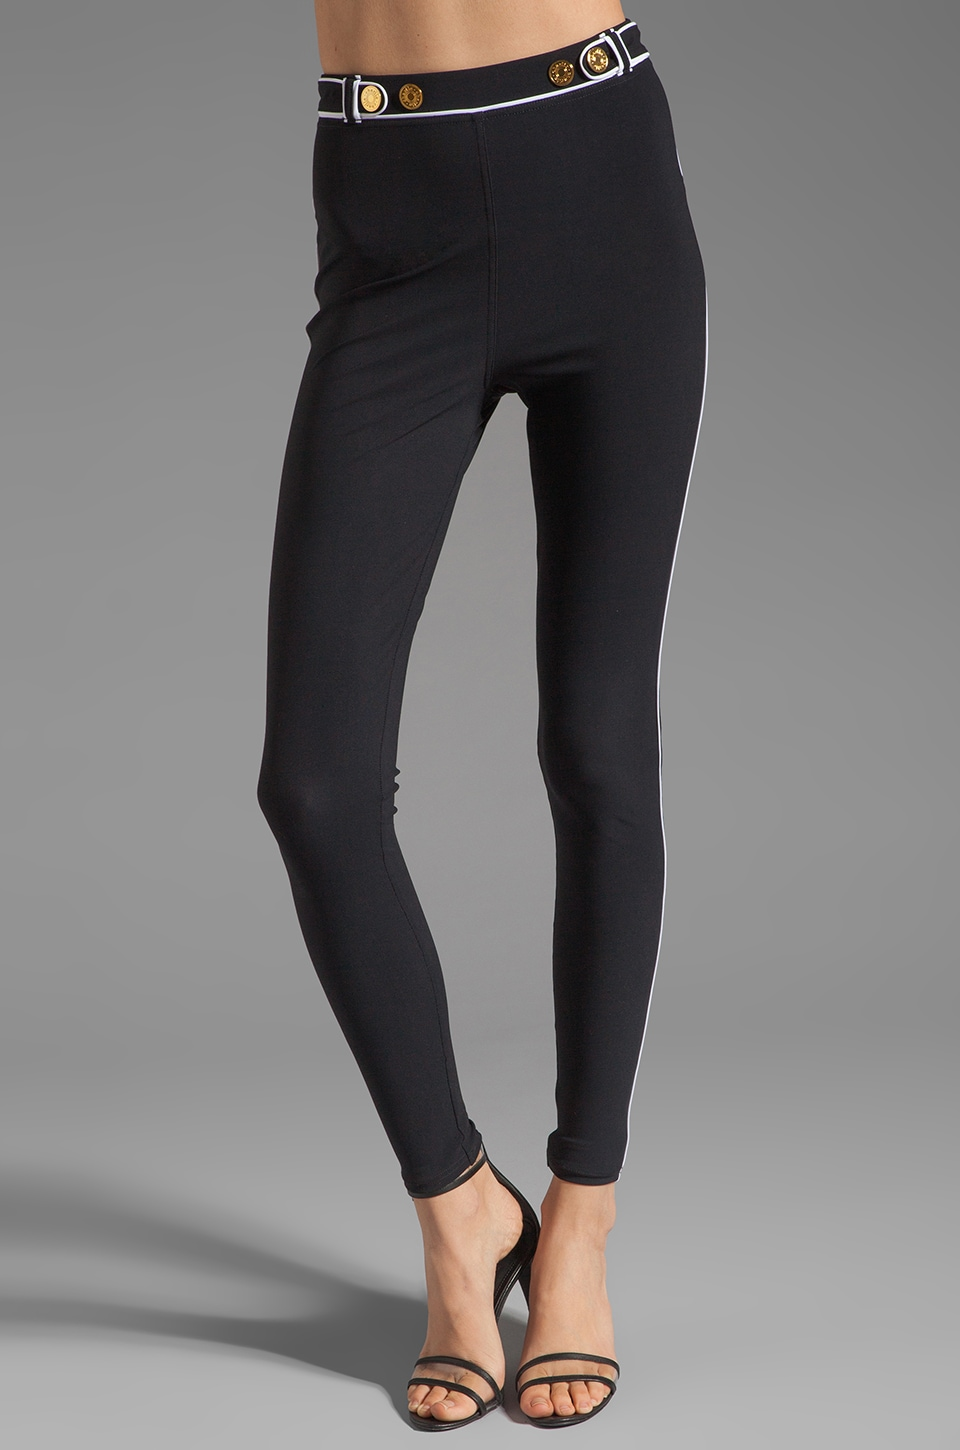 Charlie by Matthew Zink Resort Pant in Black